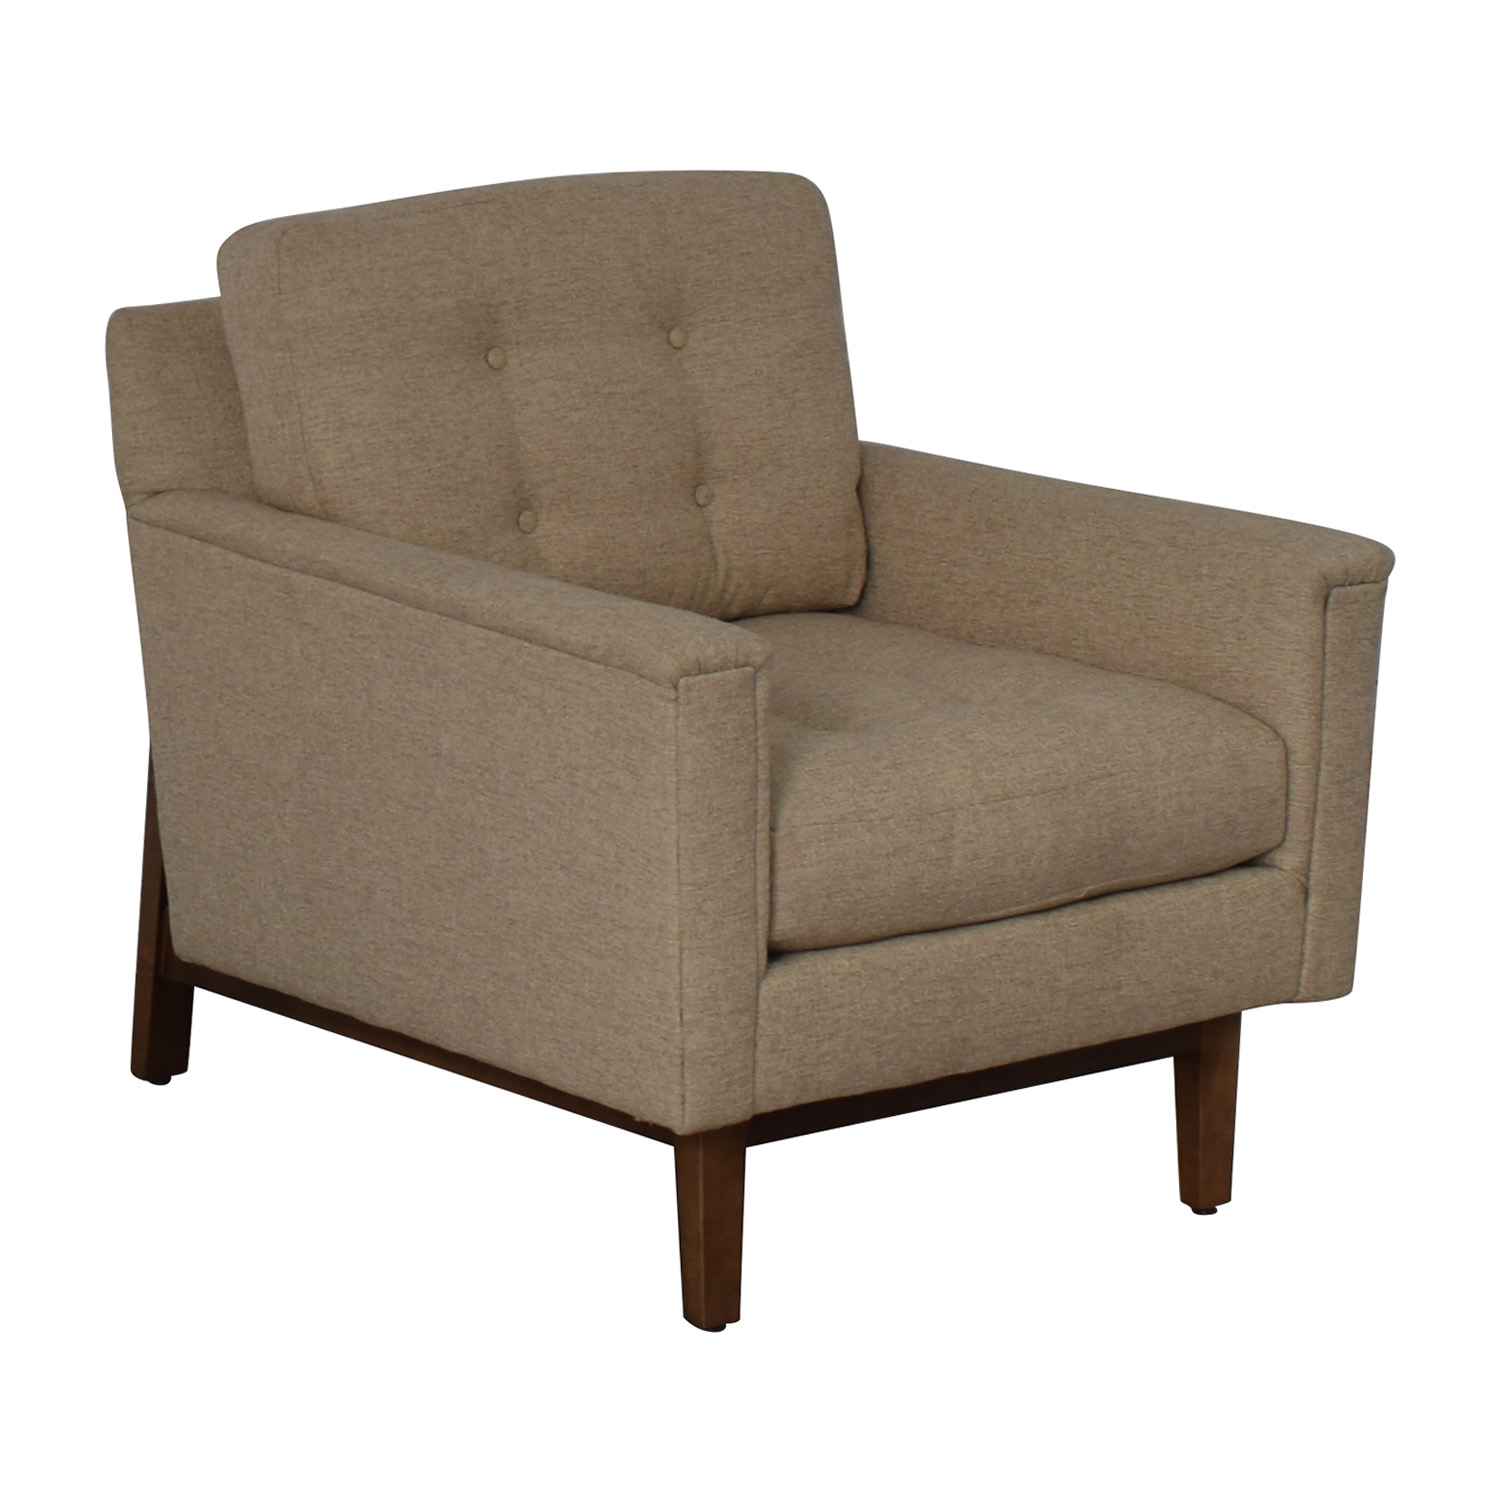 Rowe Furniture Rowe Furniture Ethan Beige Tufted Accent Armchair discount